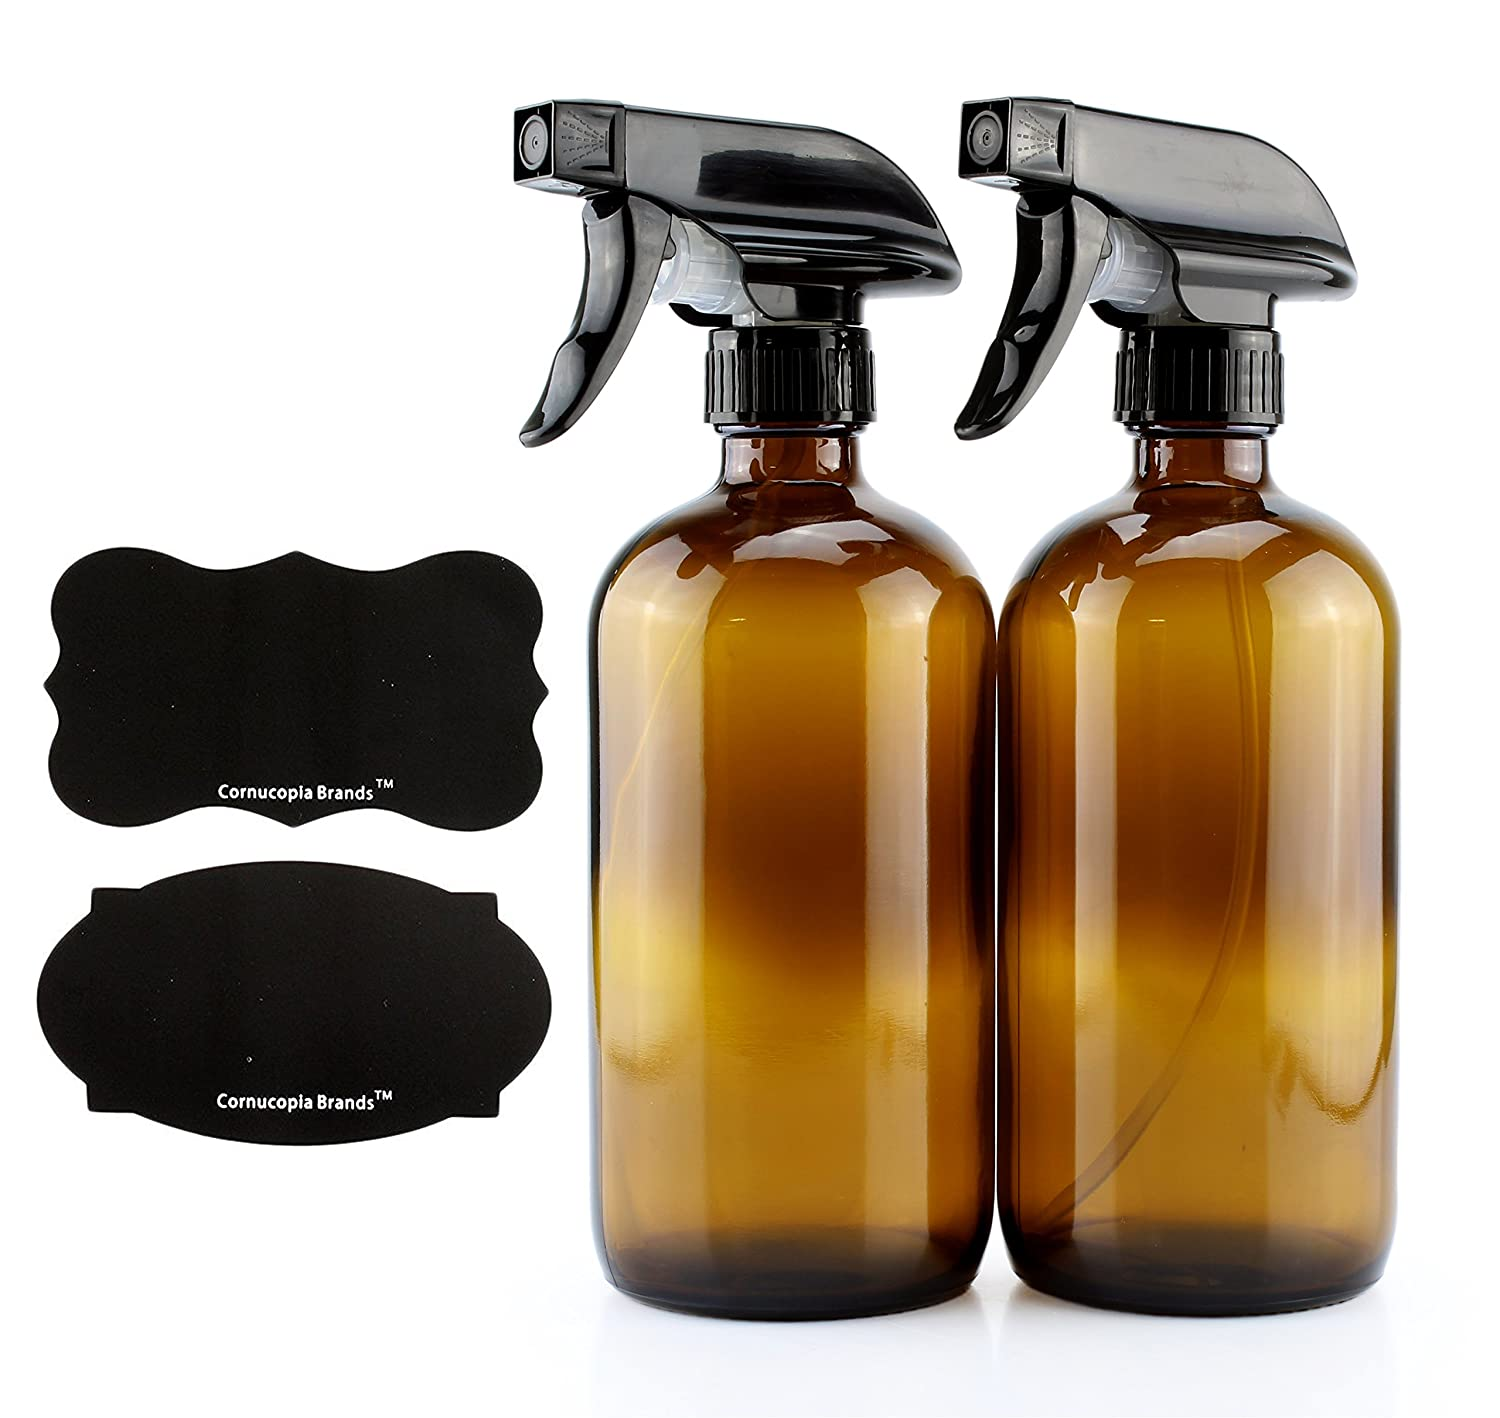 16-Ounce Amber Glass Spray Bottles w/Reusable Chalk Labels (2 Pack), Heavy Duty Mist & Stream 3-Setting Sprayer; Great for Essential Oils 81wEPIGKdNL